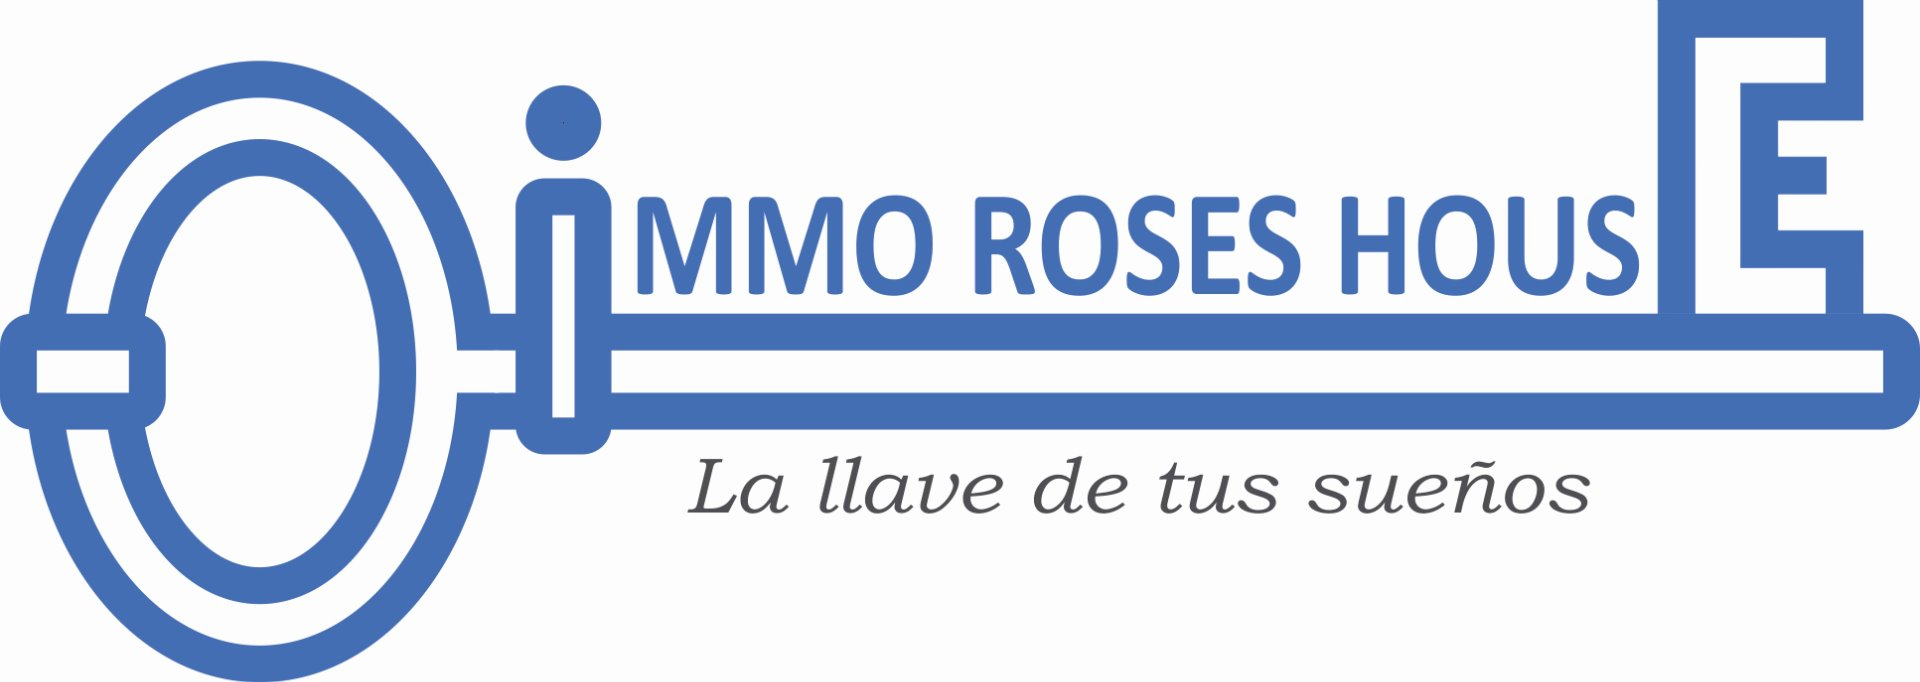 IMMO ROSES HOUSE